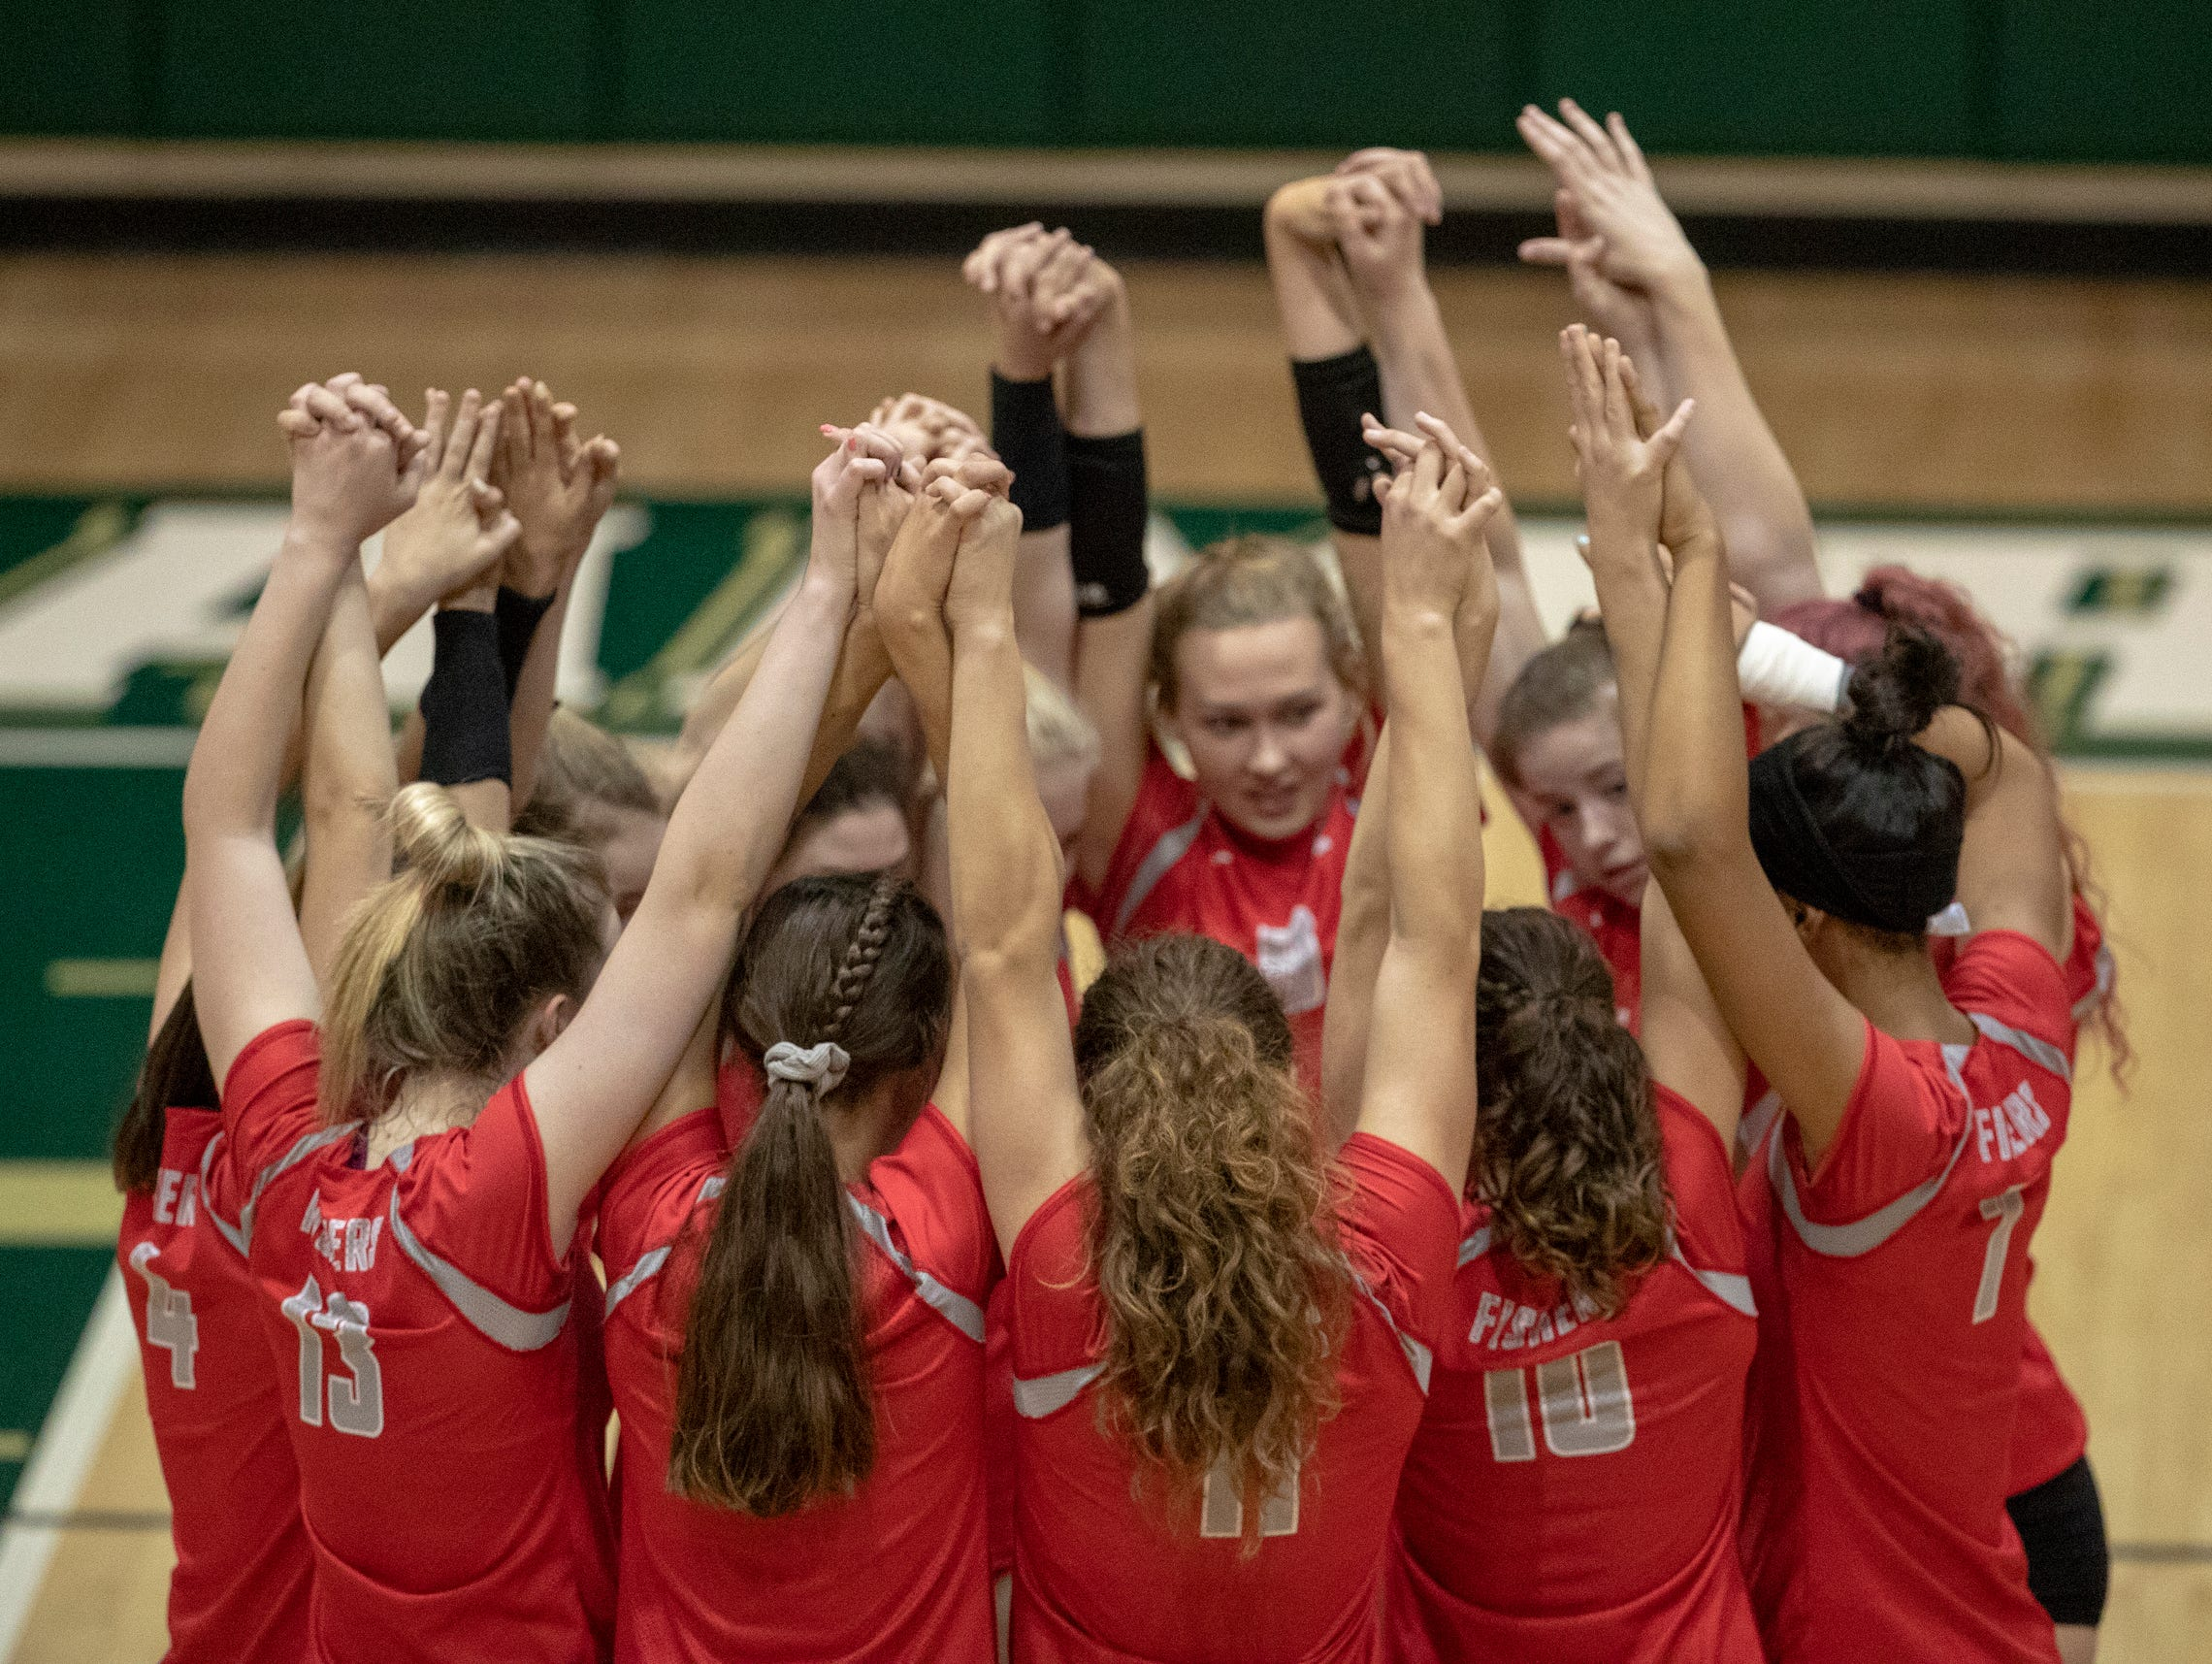 Fishers High School huddles up en route to defeating rival Hamilton Southeastern High School in three straight sets in the first round of the volleyball sectional at Westfield High School, Westfield, Thursday, Oct. 11, 2018. The win matches them up with Westfield High School for a game on Saturday morning at 11a.m.